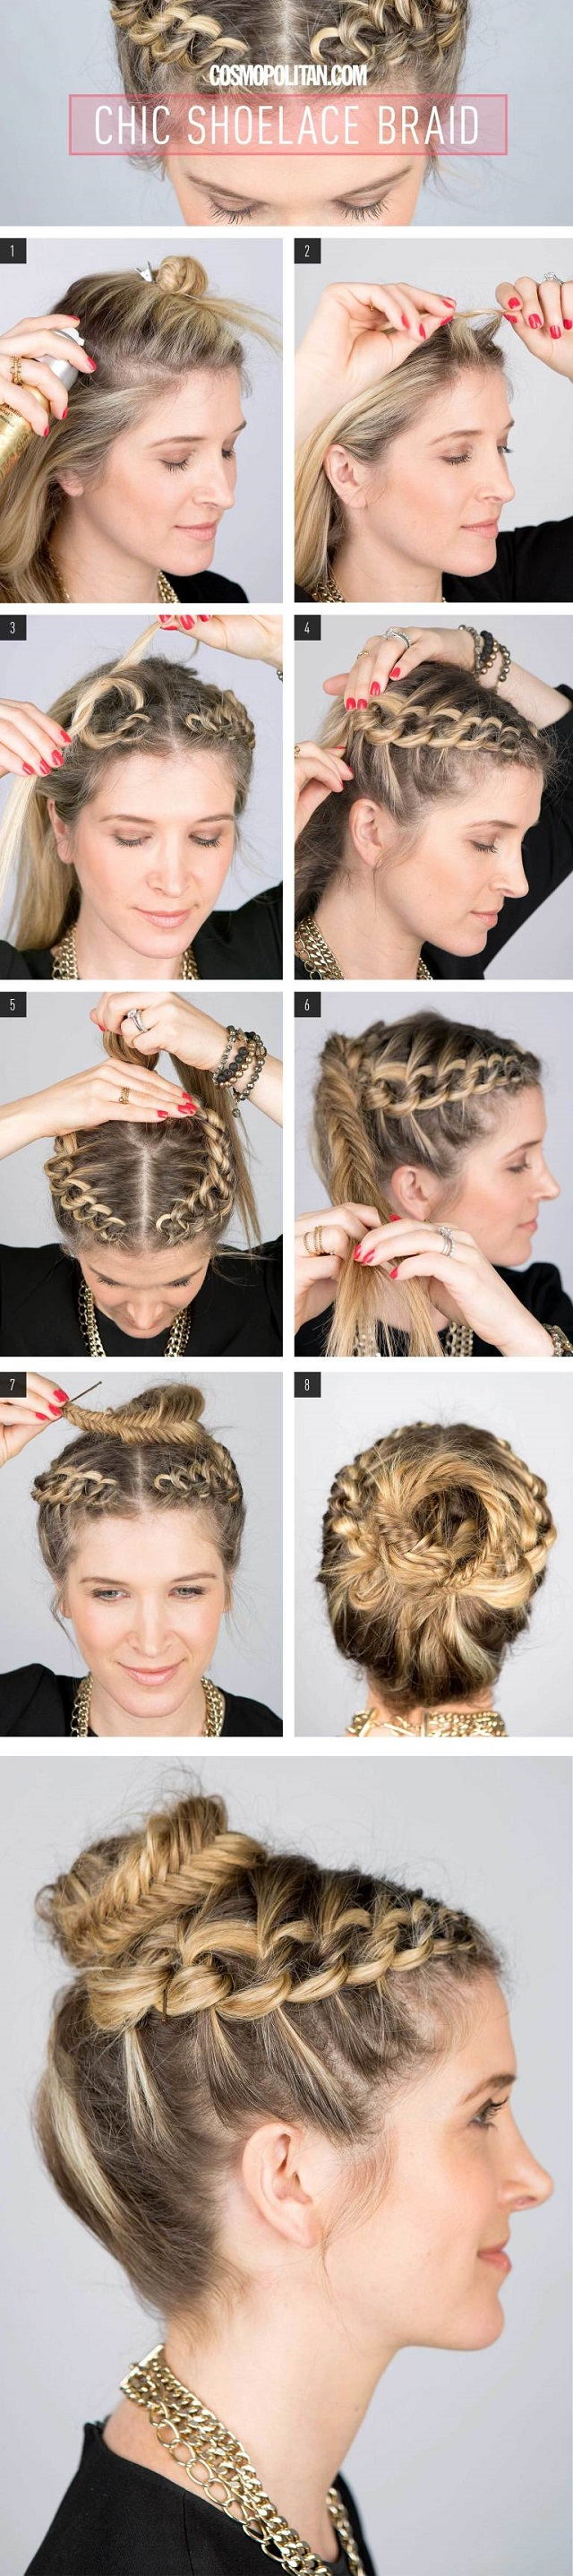 Cute-Shoelace-Braid-DIY-Hairstyle